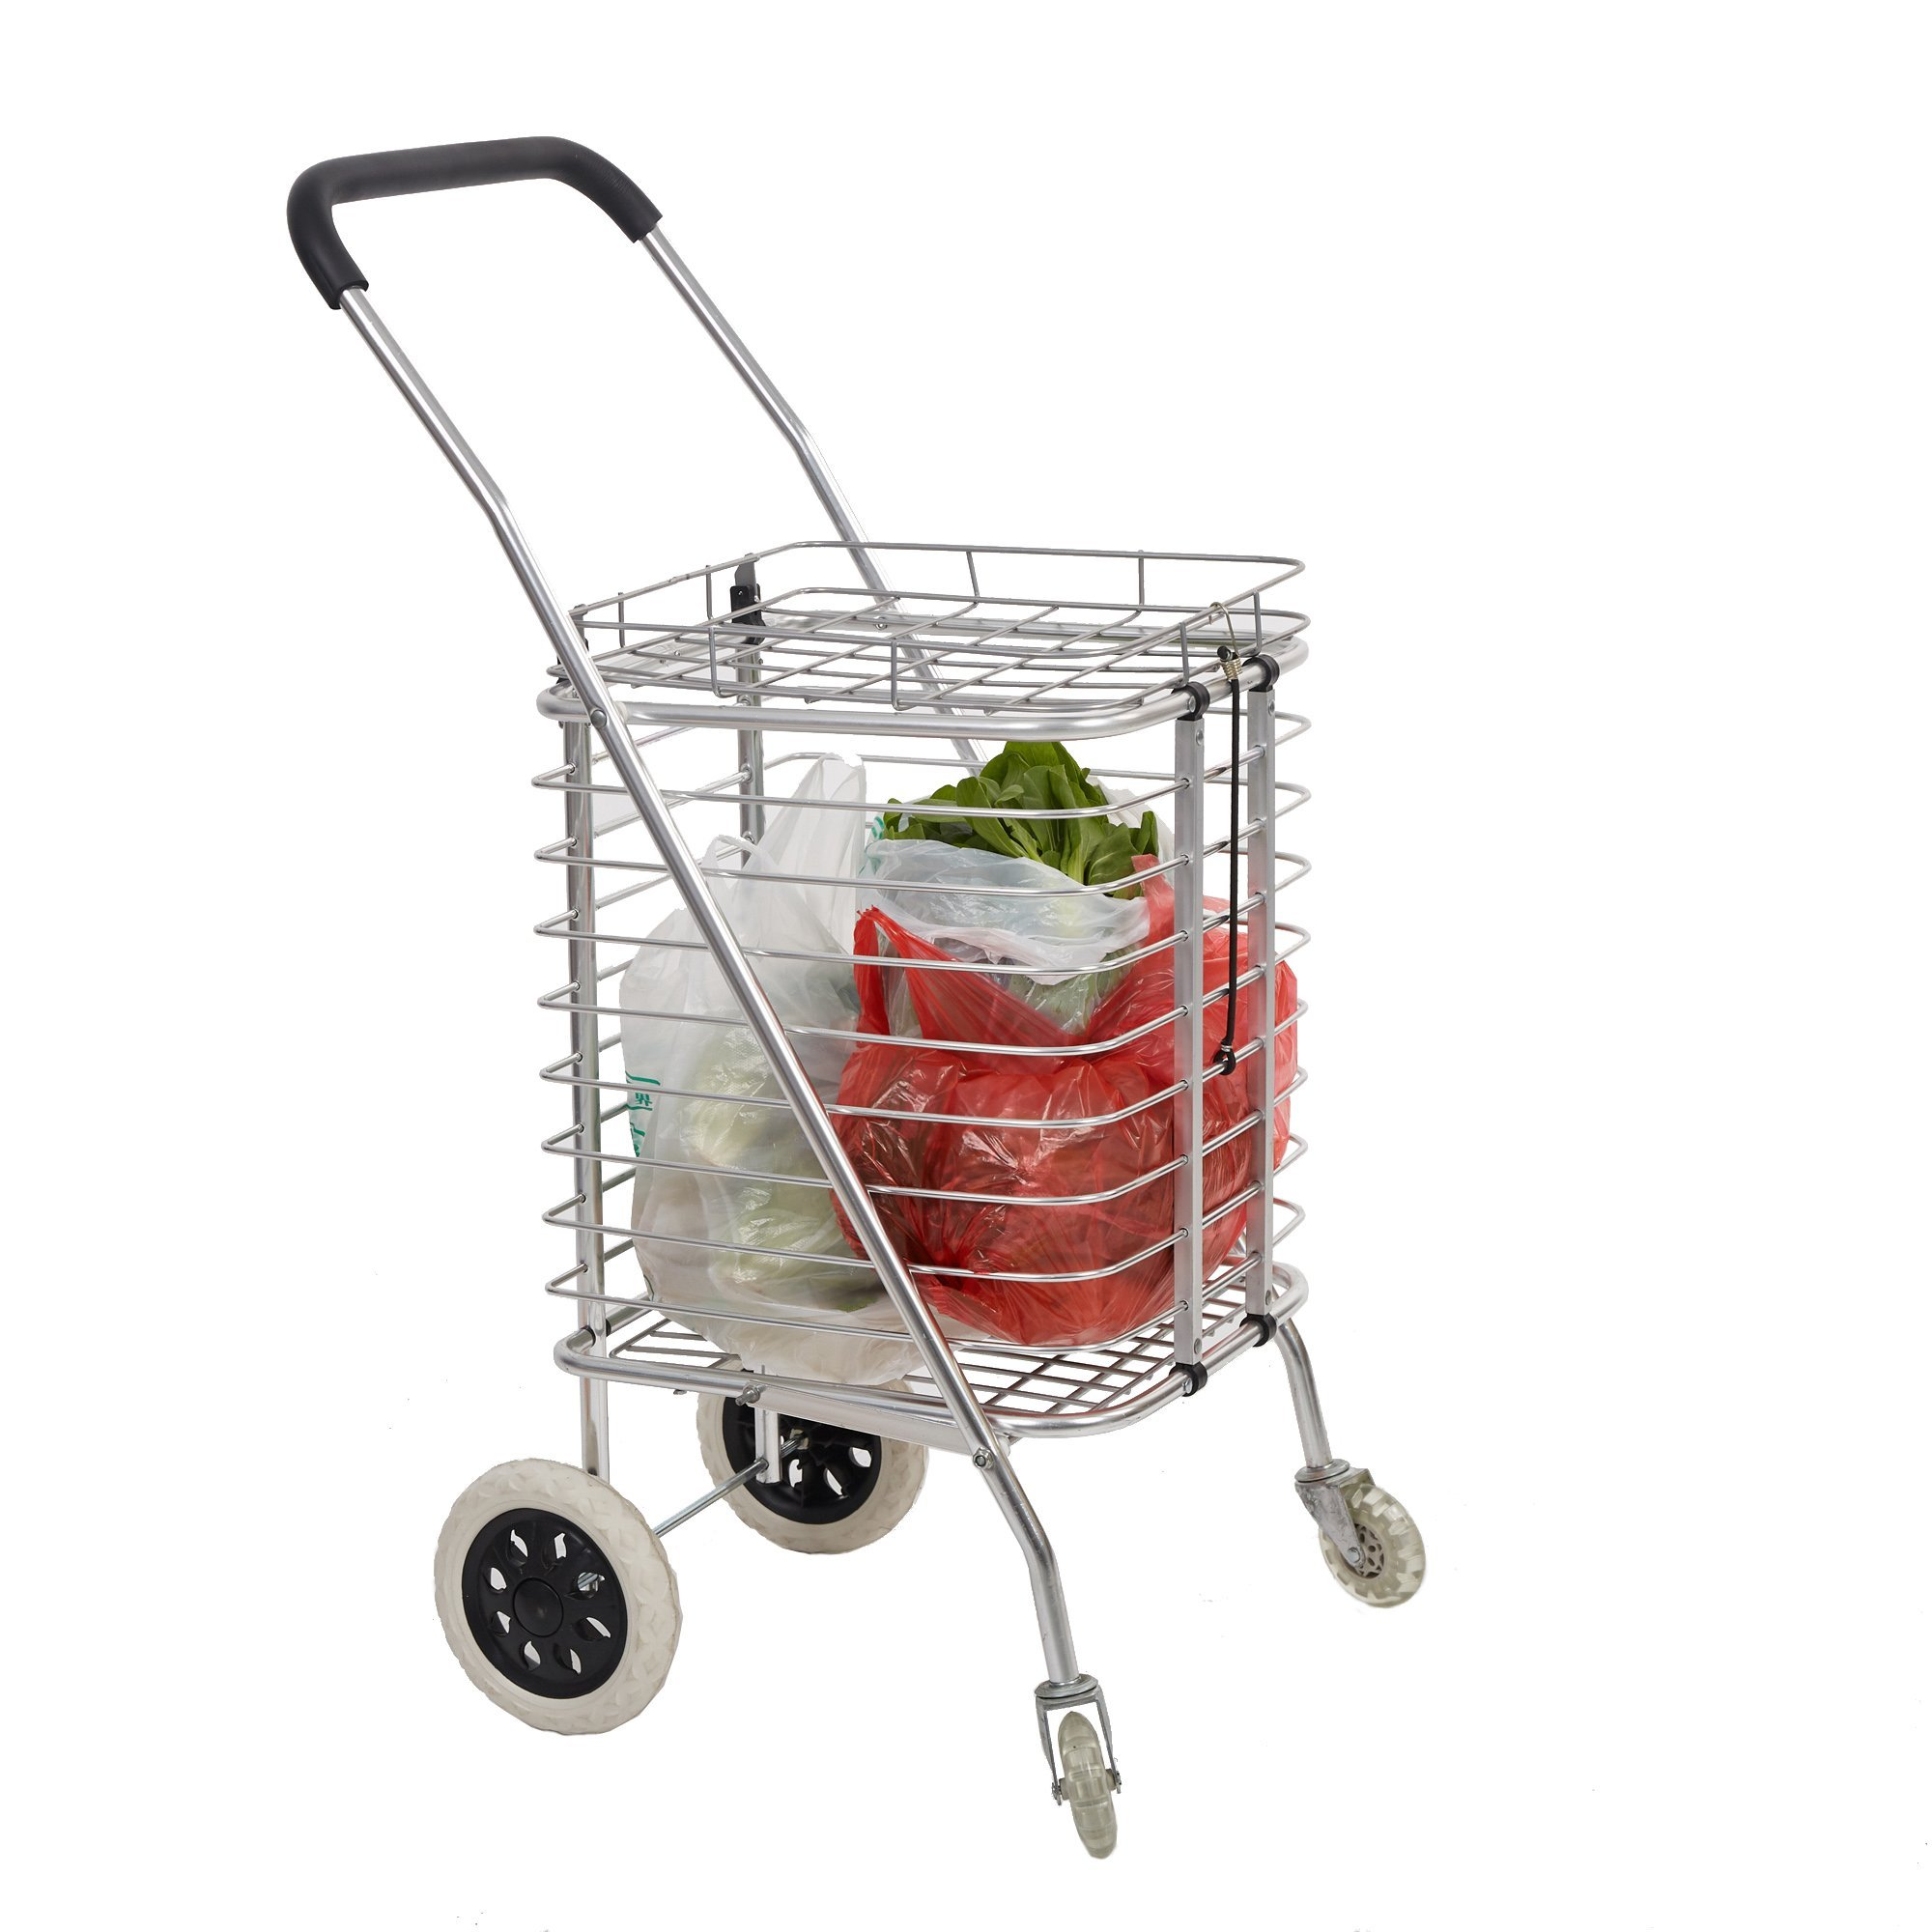 Dporticus Aluminum Grocery Shopping Cart Premium Heavy Duty Deluxe Foldable Utility Cart with wheels and Cover